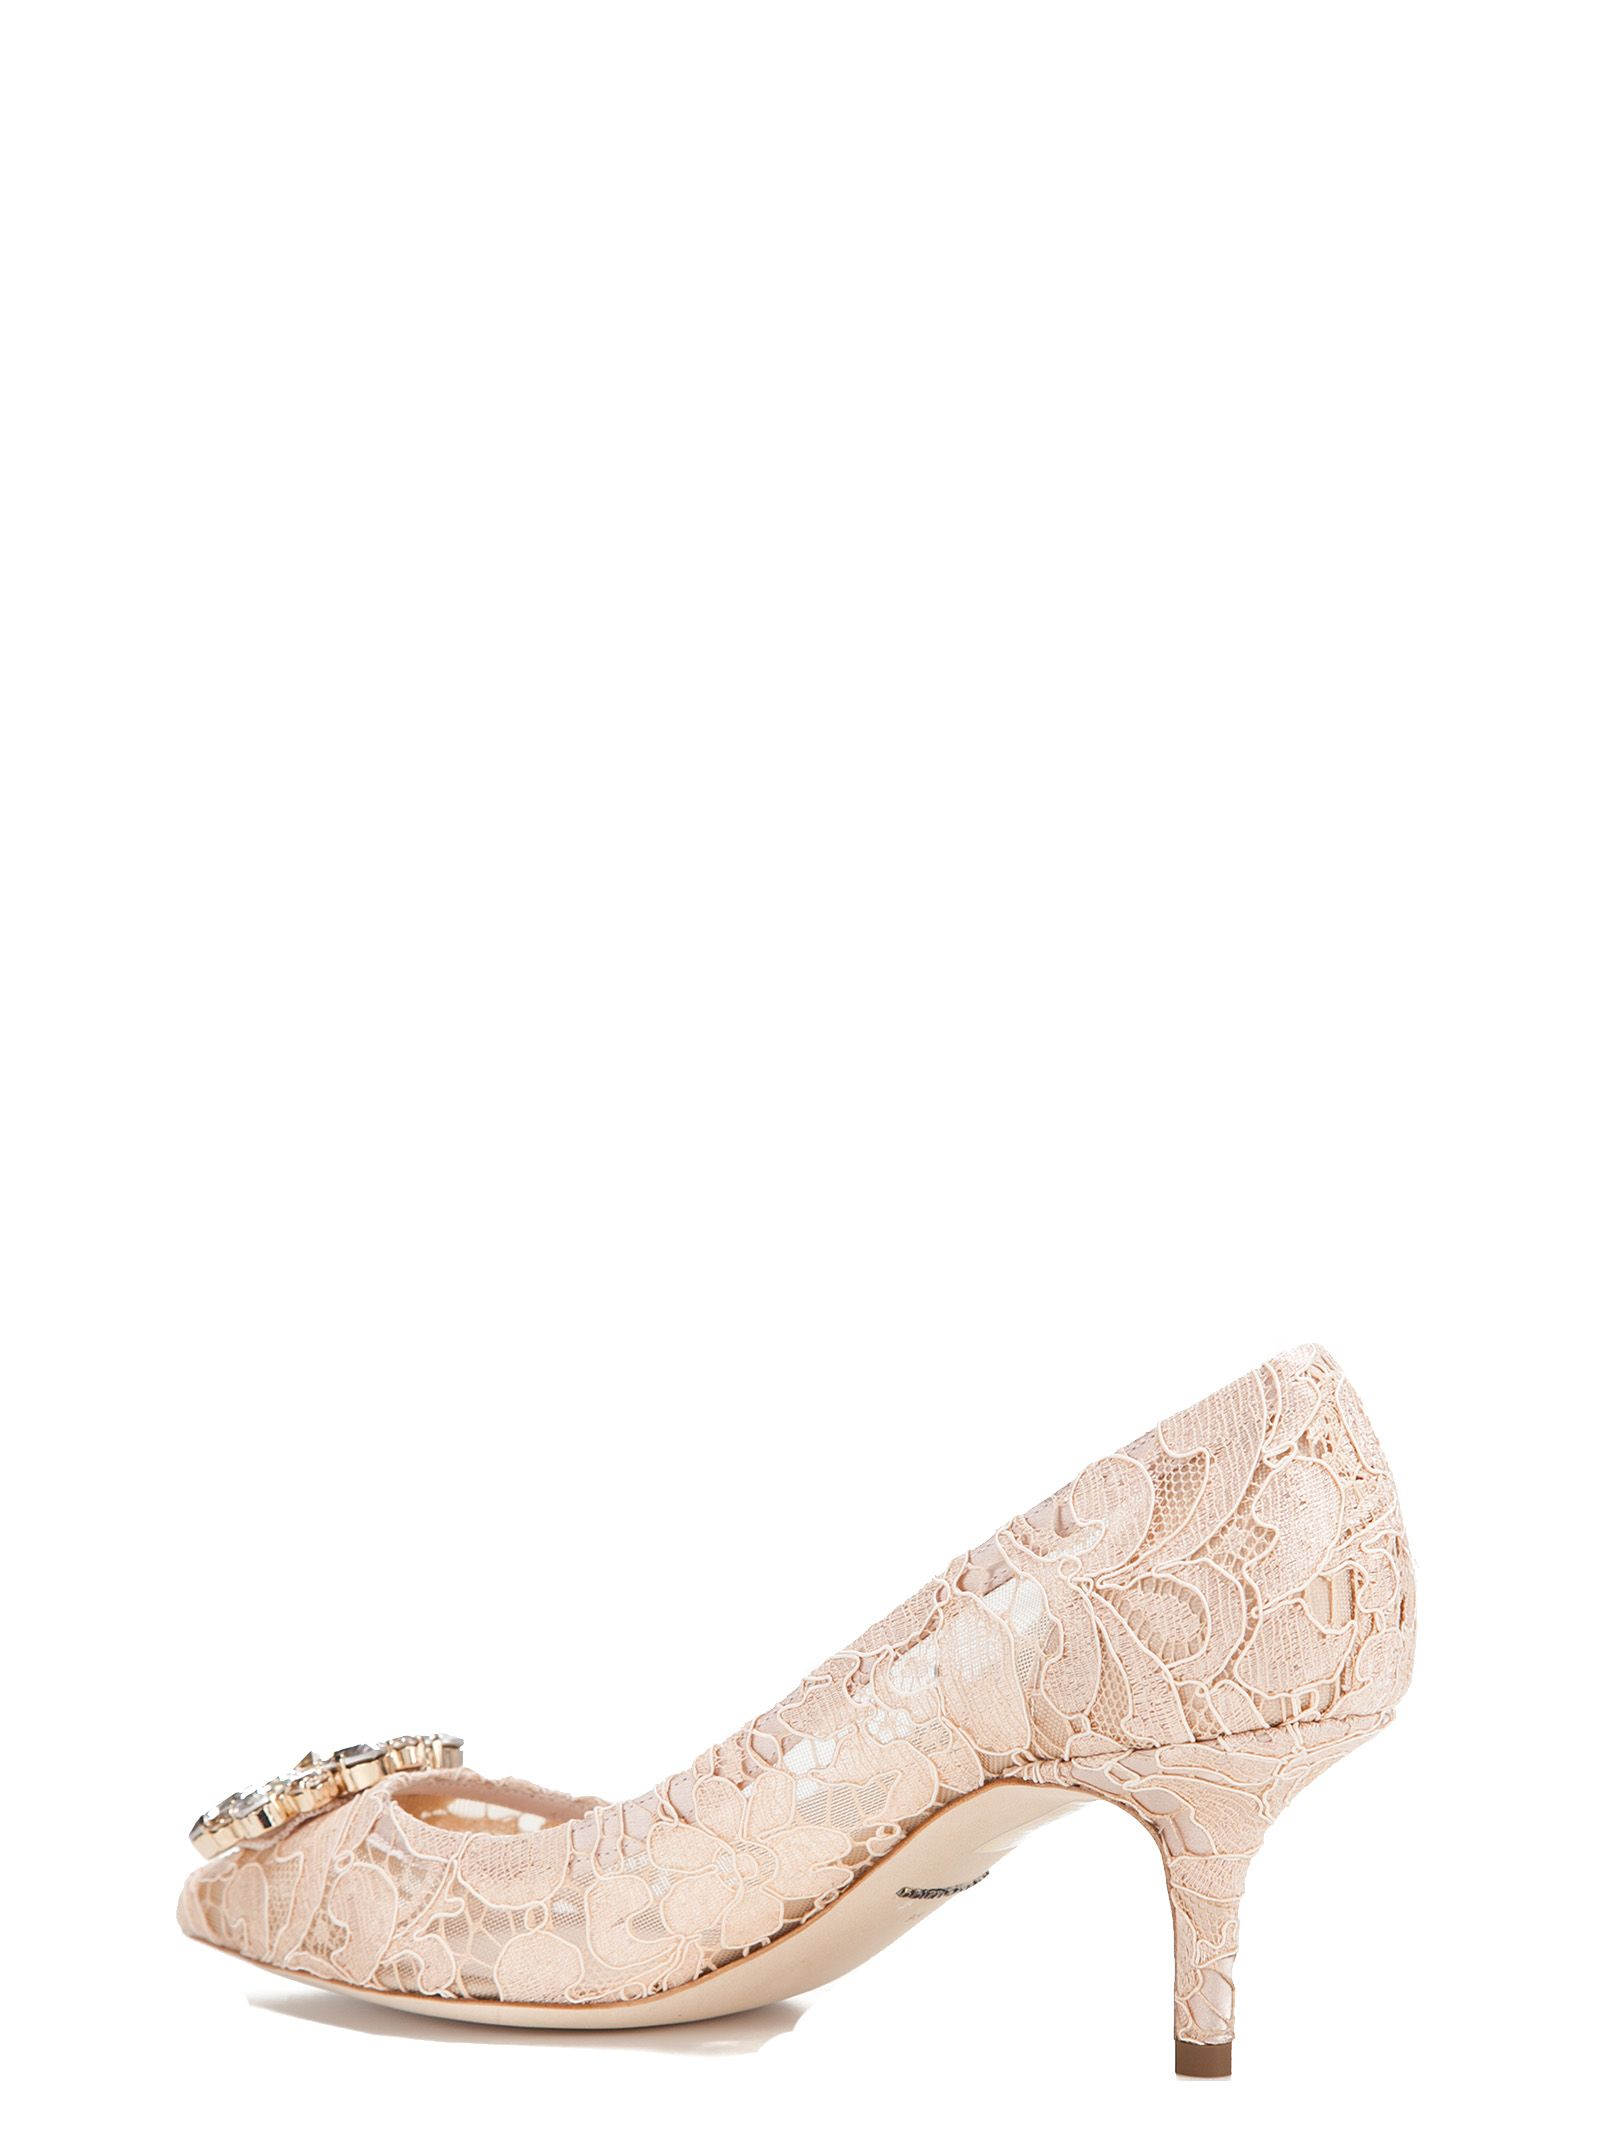 embroidered pumps - Nude & Neutrals Dolce & Gabbana CtaaI